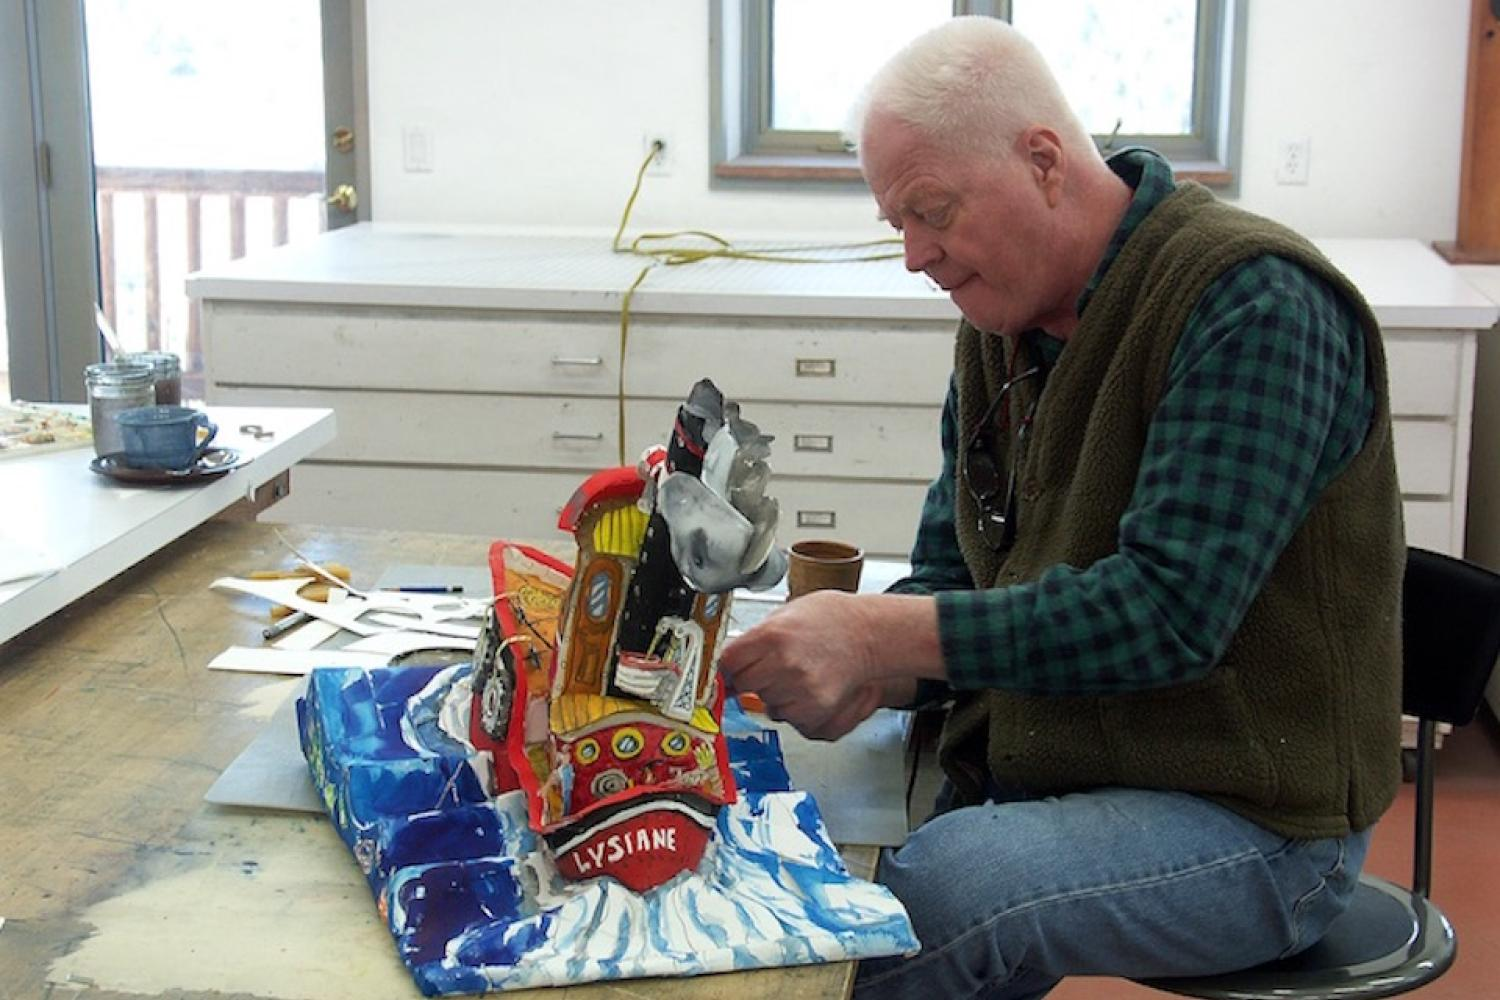 Red Grooms at work in the studio